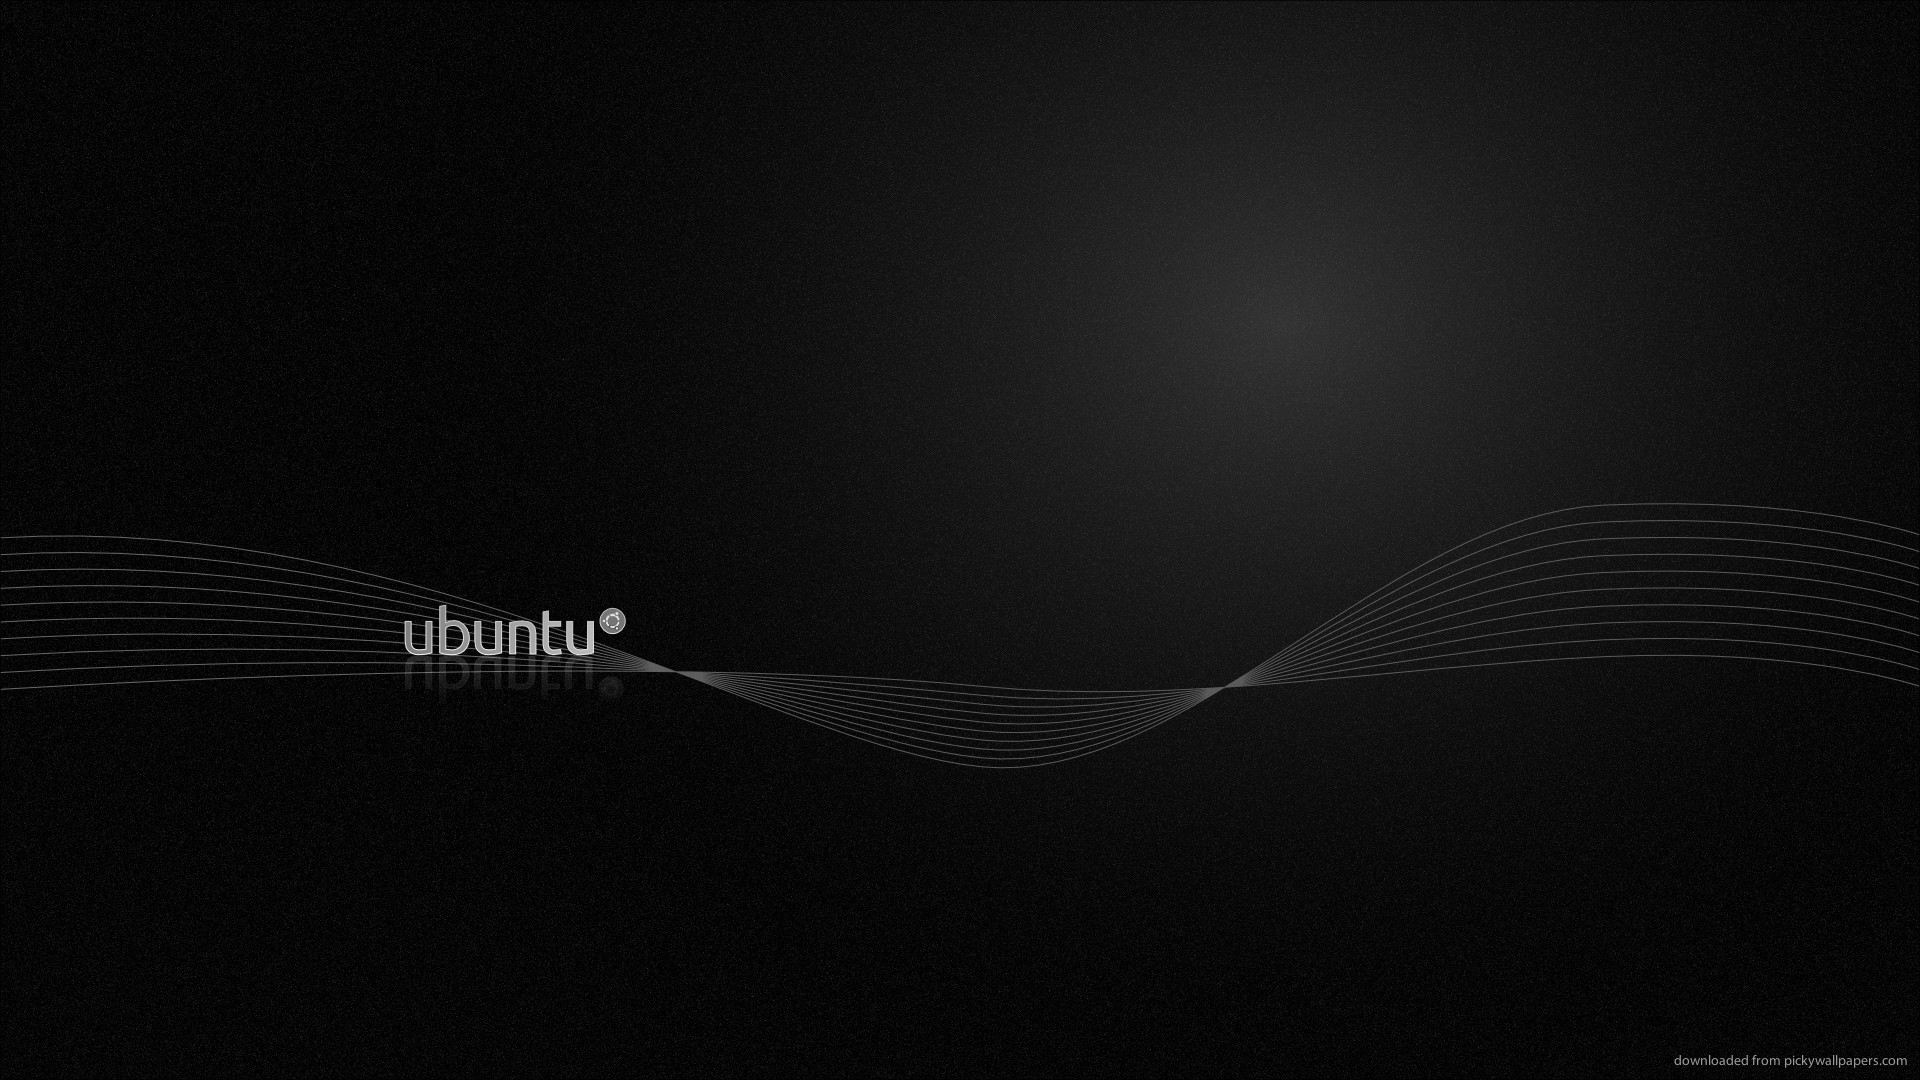 ubuntu black wallpaper computers linux 1920x1080 1920x1080